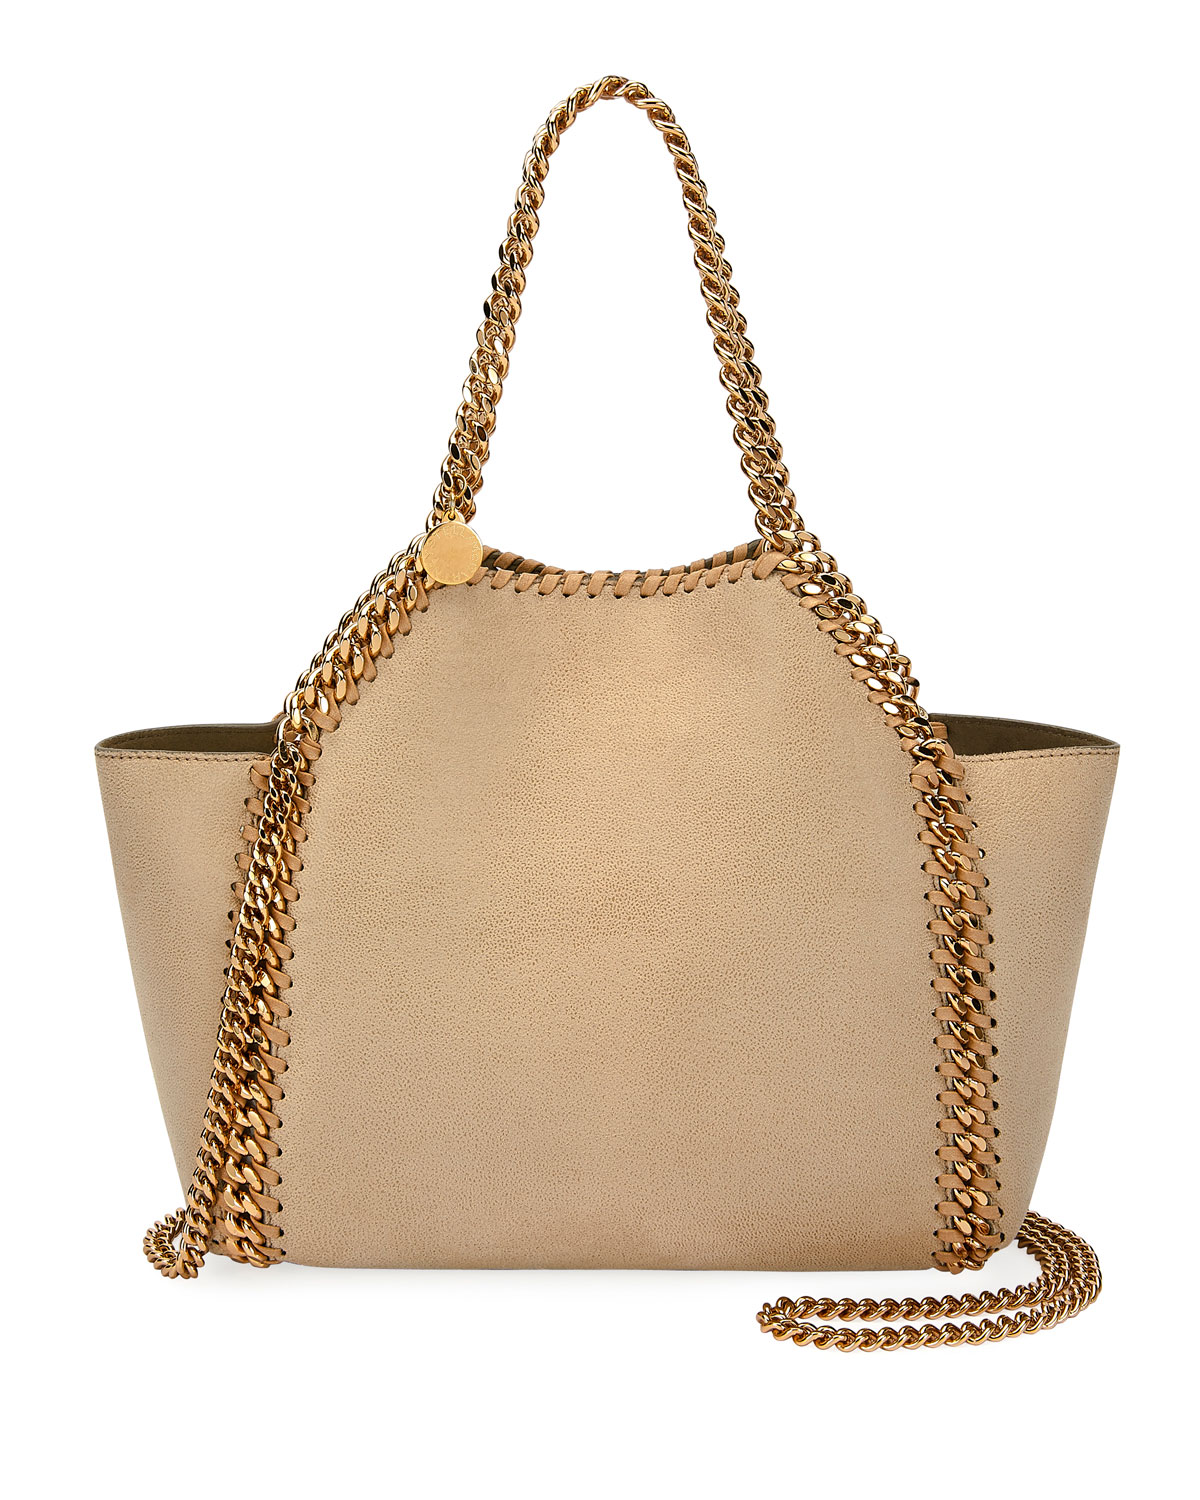 Stella McCartney Falabella Mini Reversible Shaggy Deer Tote Bag ... 8a40005dfce73